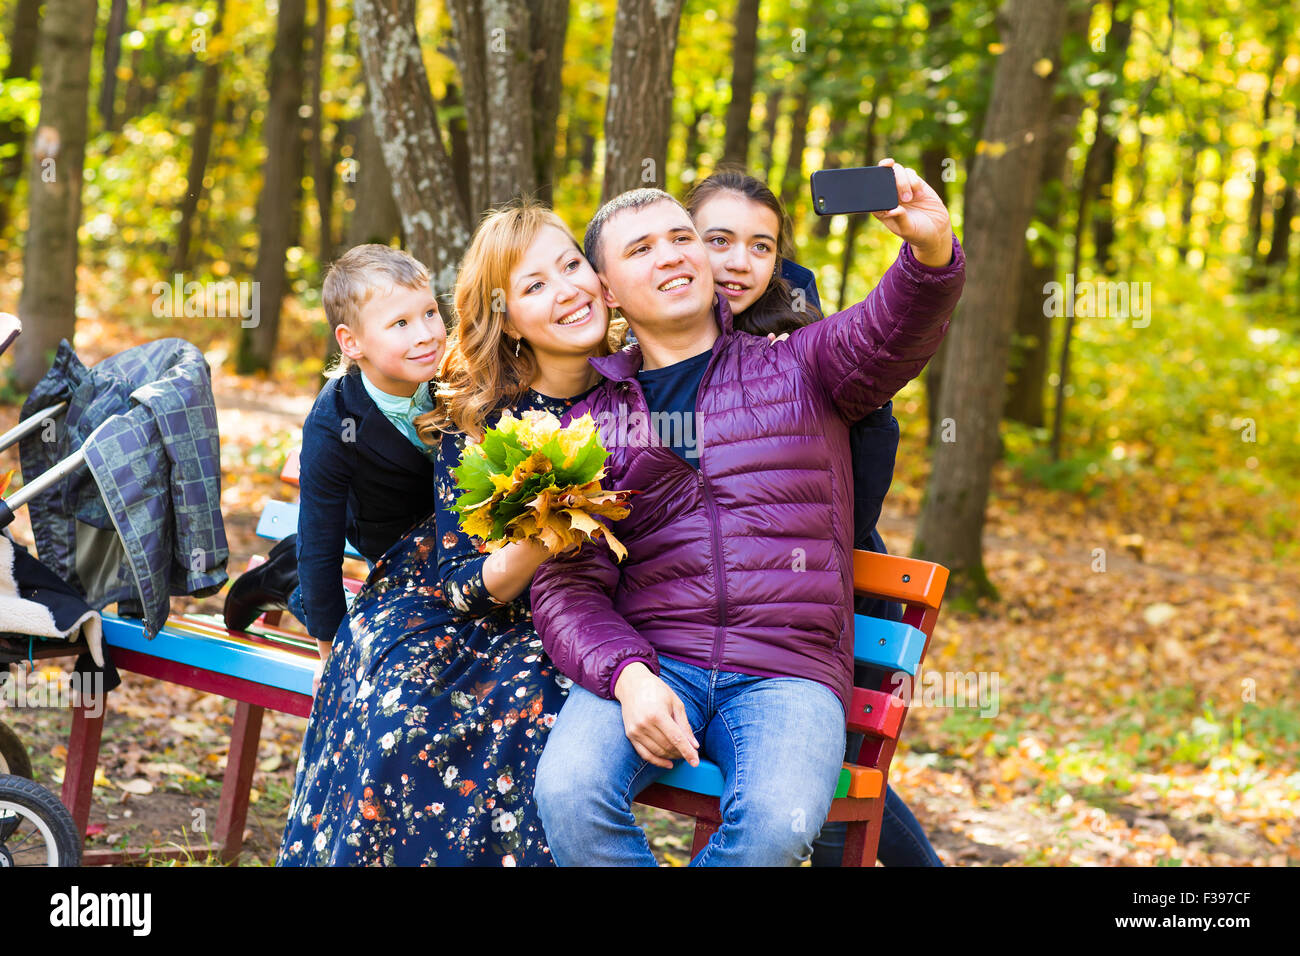 family, childhood, season, technology and people concept - happy family taking selfie with smartphone in autumn - Stock Image